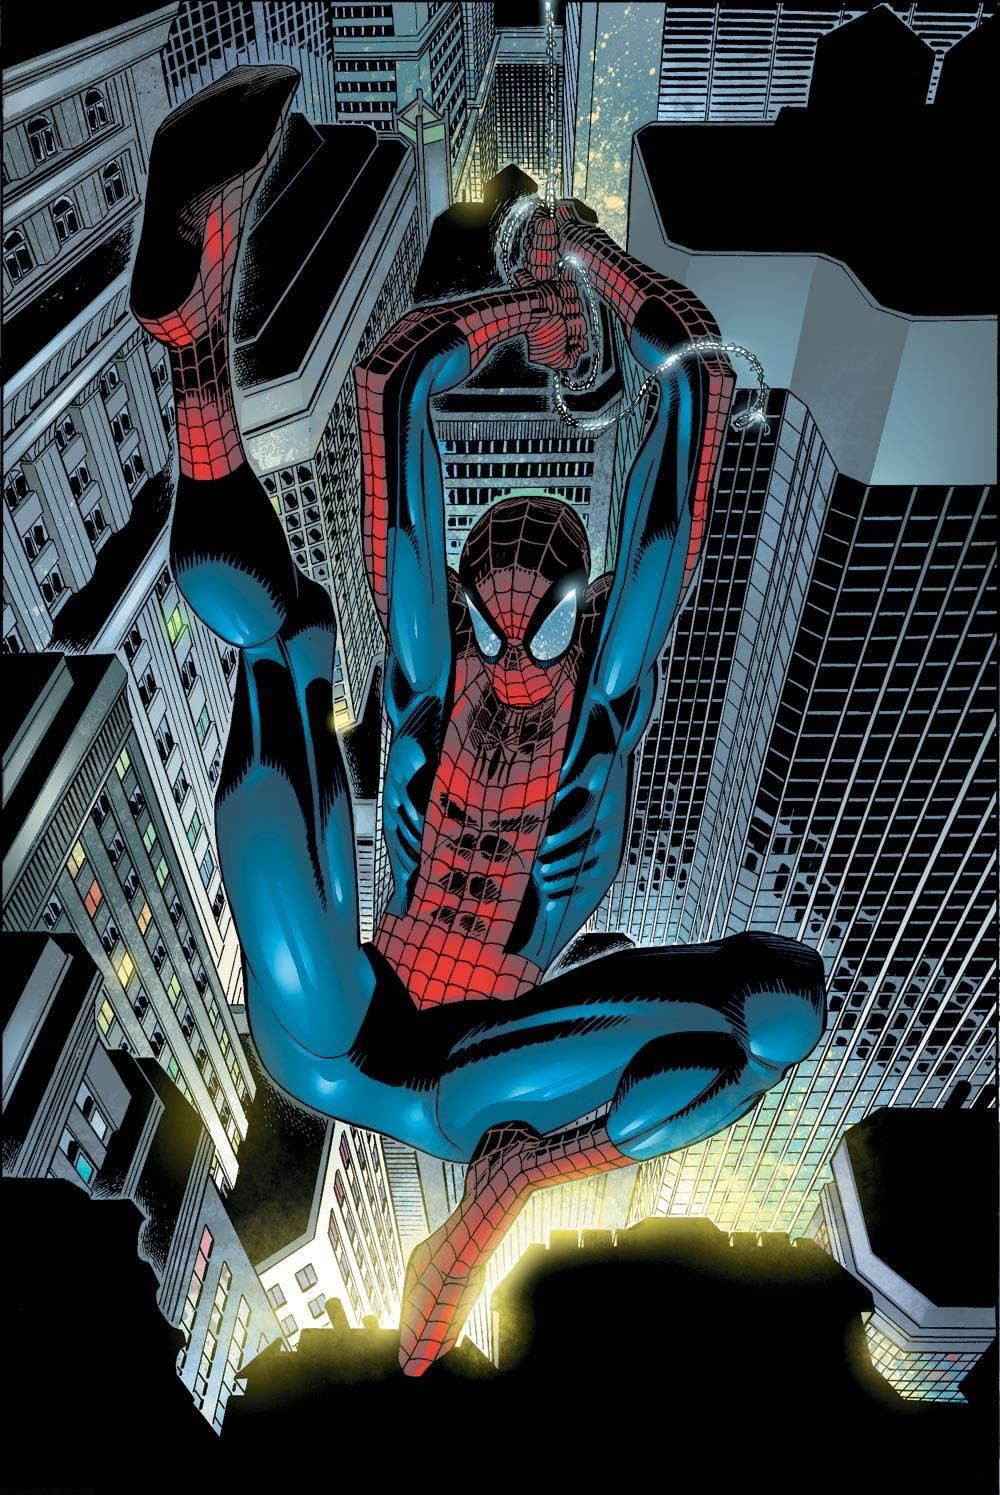 #Amazing #Spiderman #Fan #Art. (The Amazing Spider-Man) By: John Romita Jr. (THE * 5 * STÅR * ÅWARD * OF: * AW YEAH, IT'S MAJOR ÅWESOMENESS!!!™)[THANK Ü 4 PINNING!!!<·><]<©>ÅÅÅ+(OB4E)